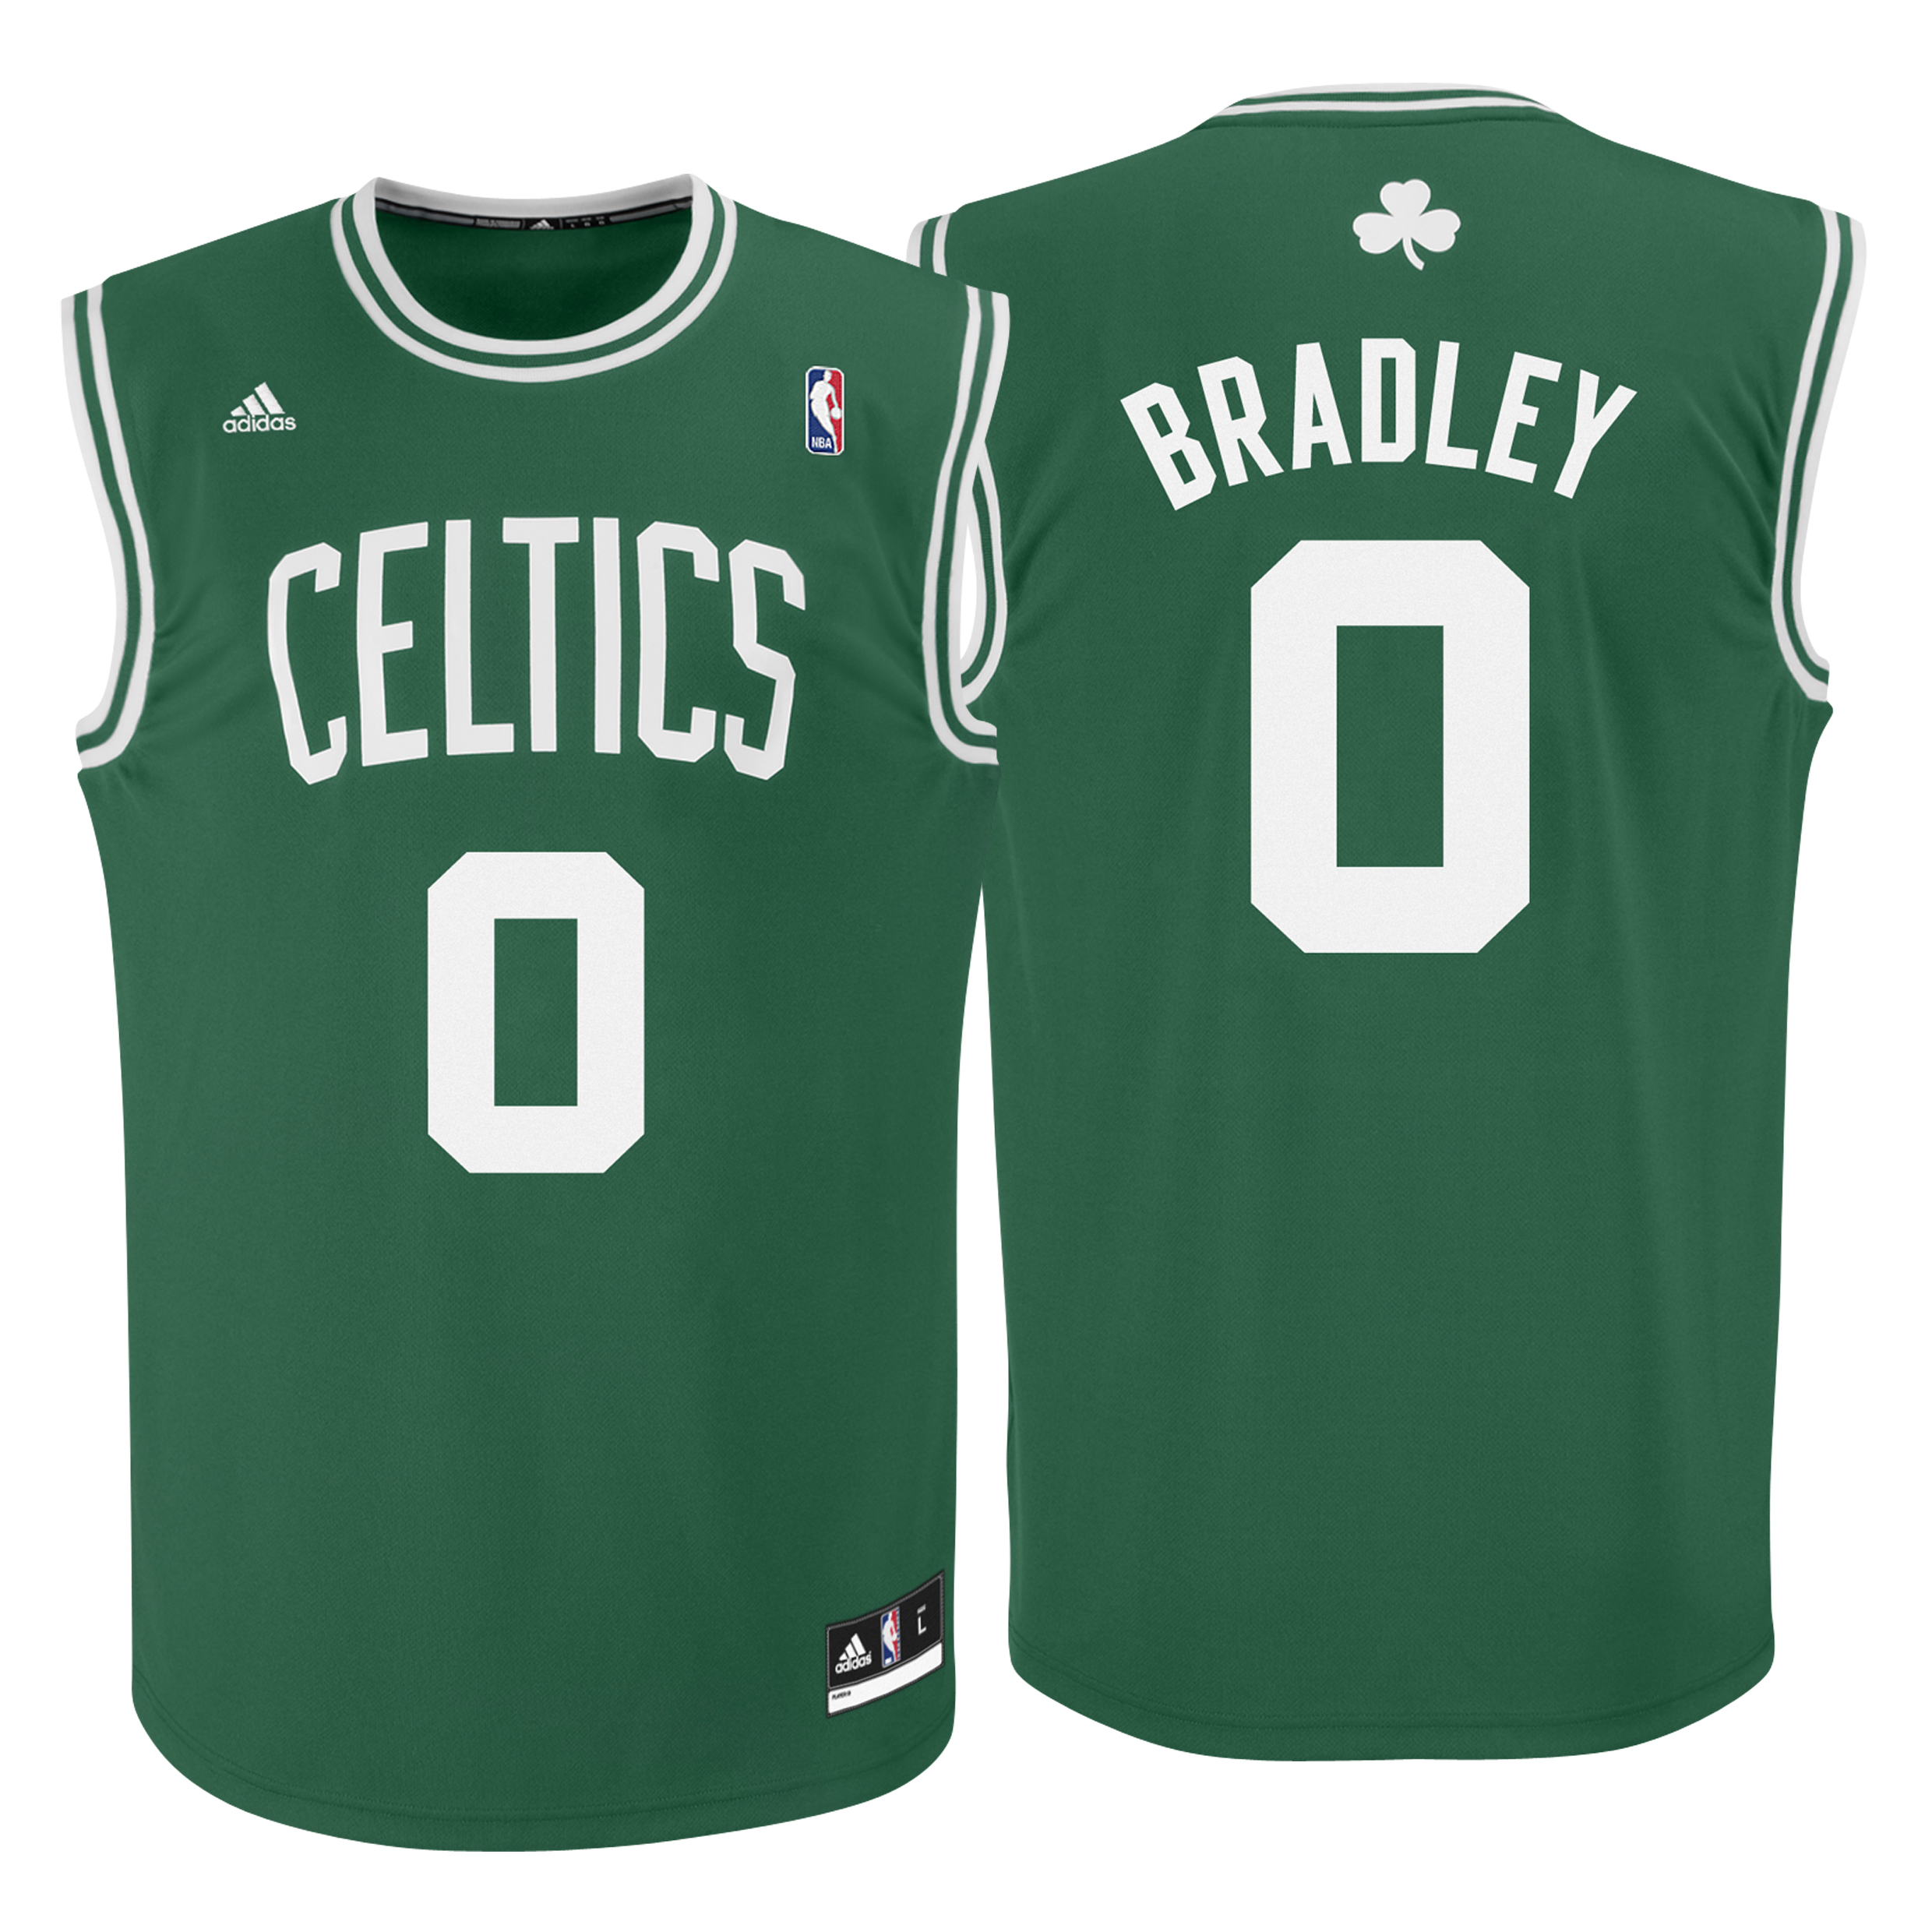 Boston Celtics Road Replica Jersey - Avery Bradley - Mens